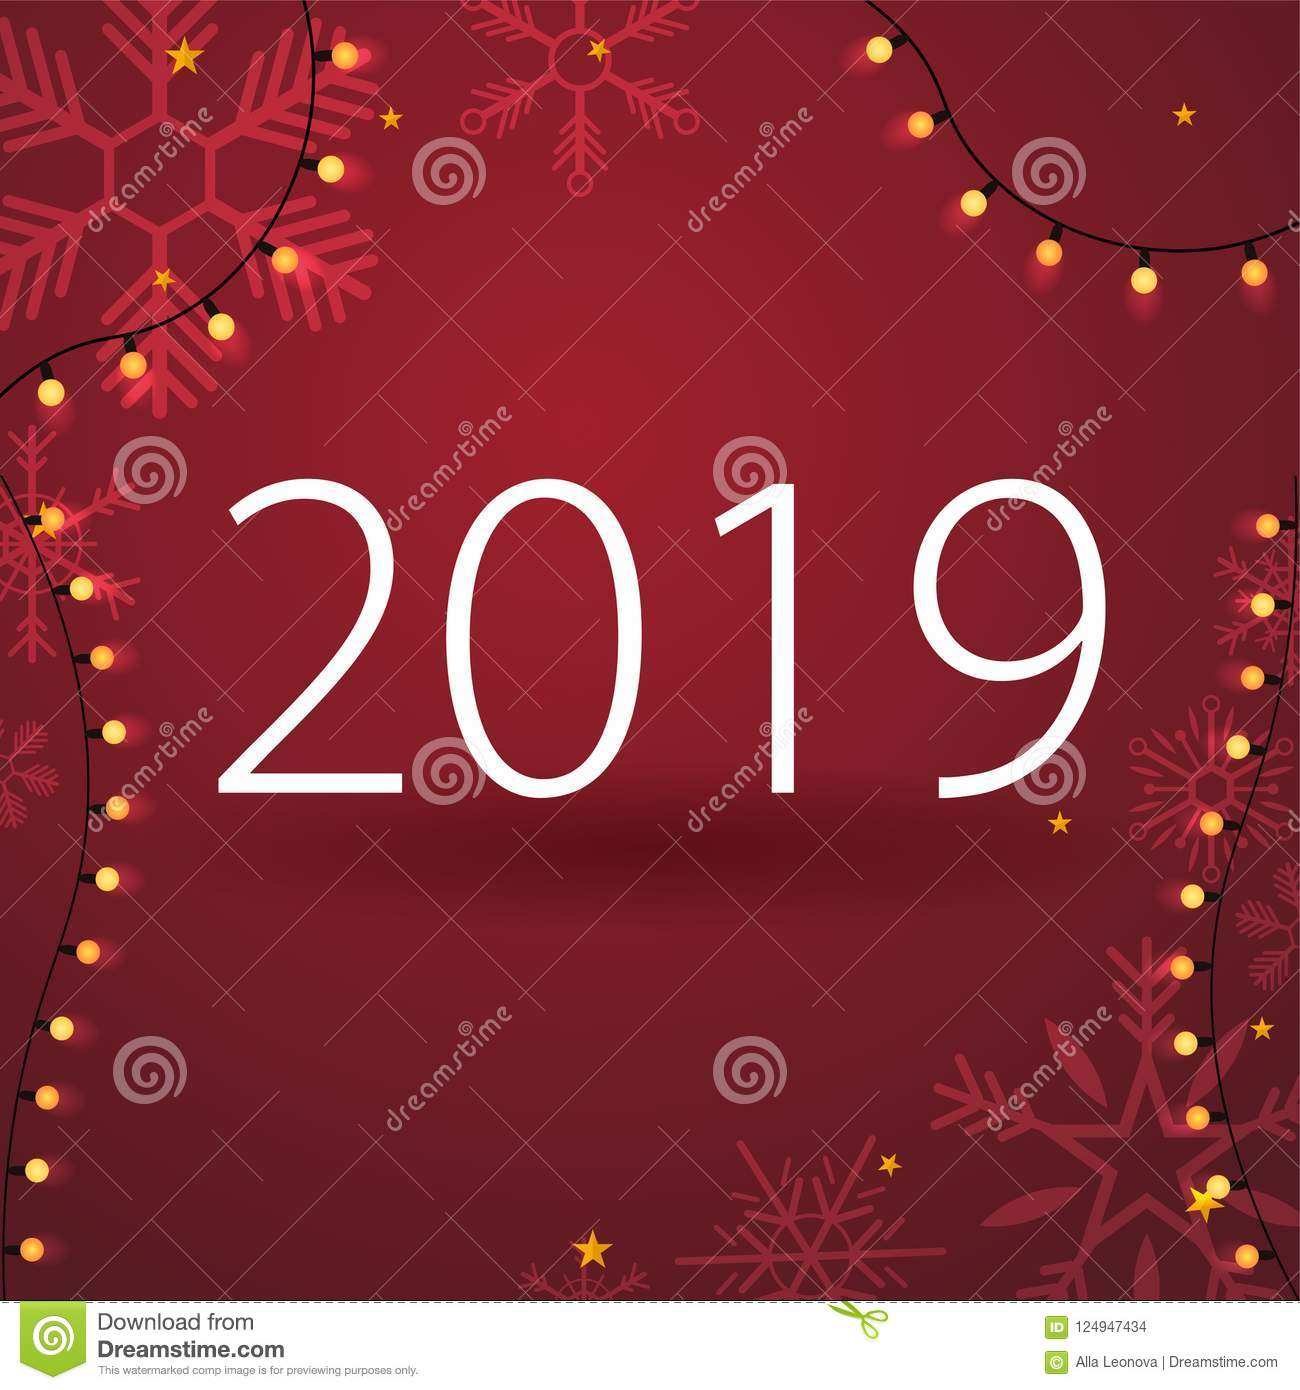 2019 Happy New Year Background With Snowflakes For Your Seasonal